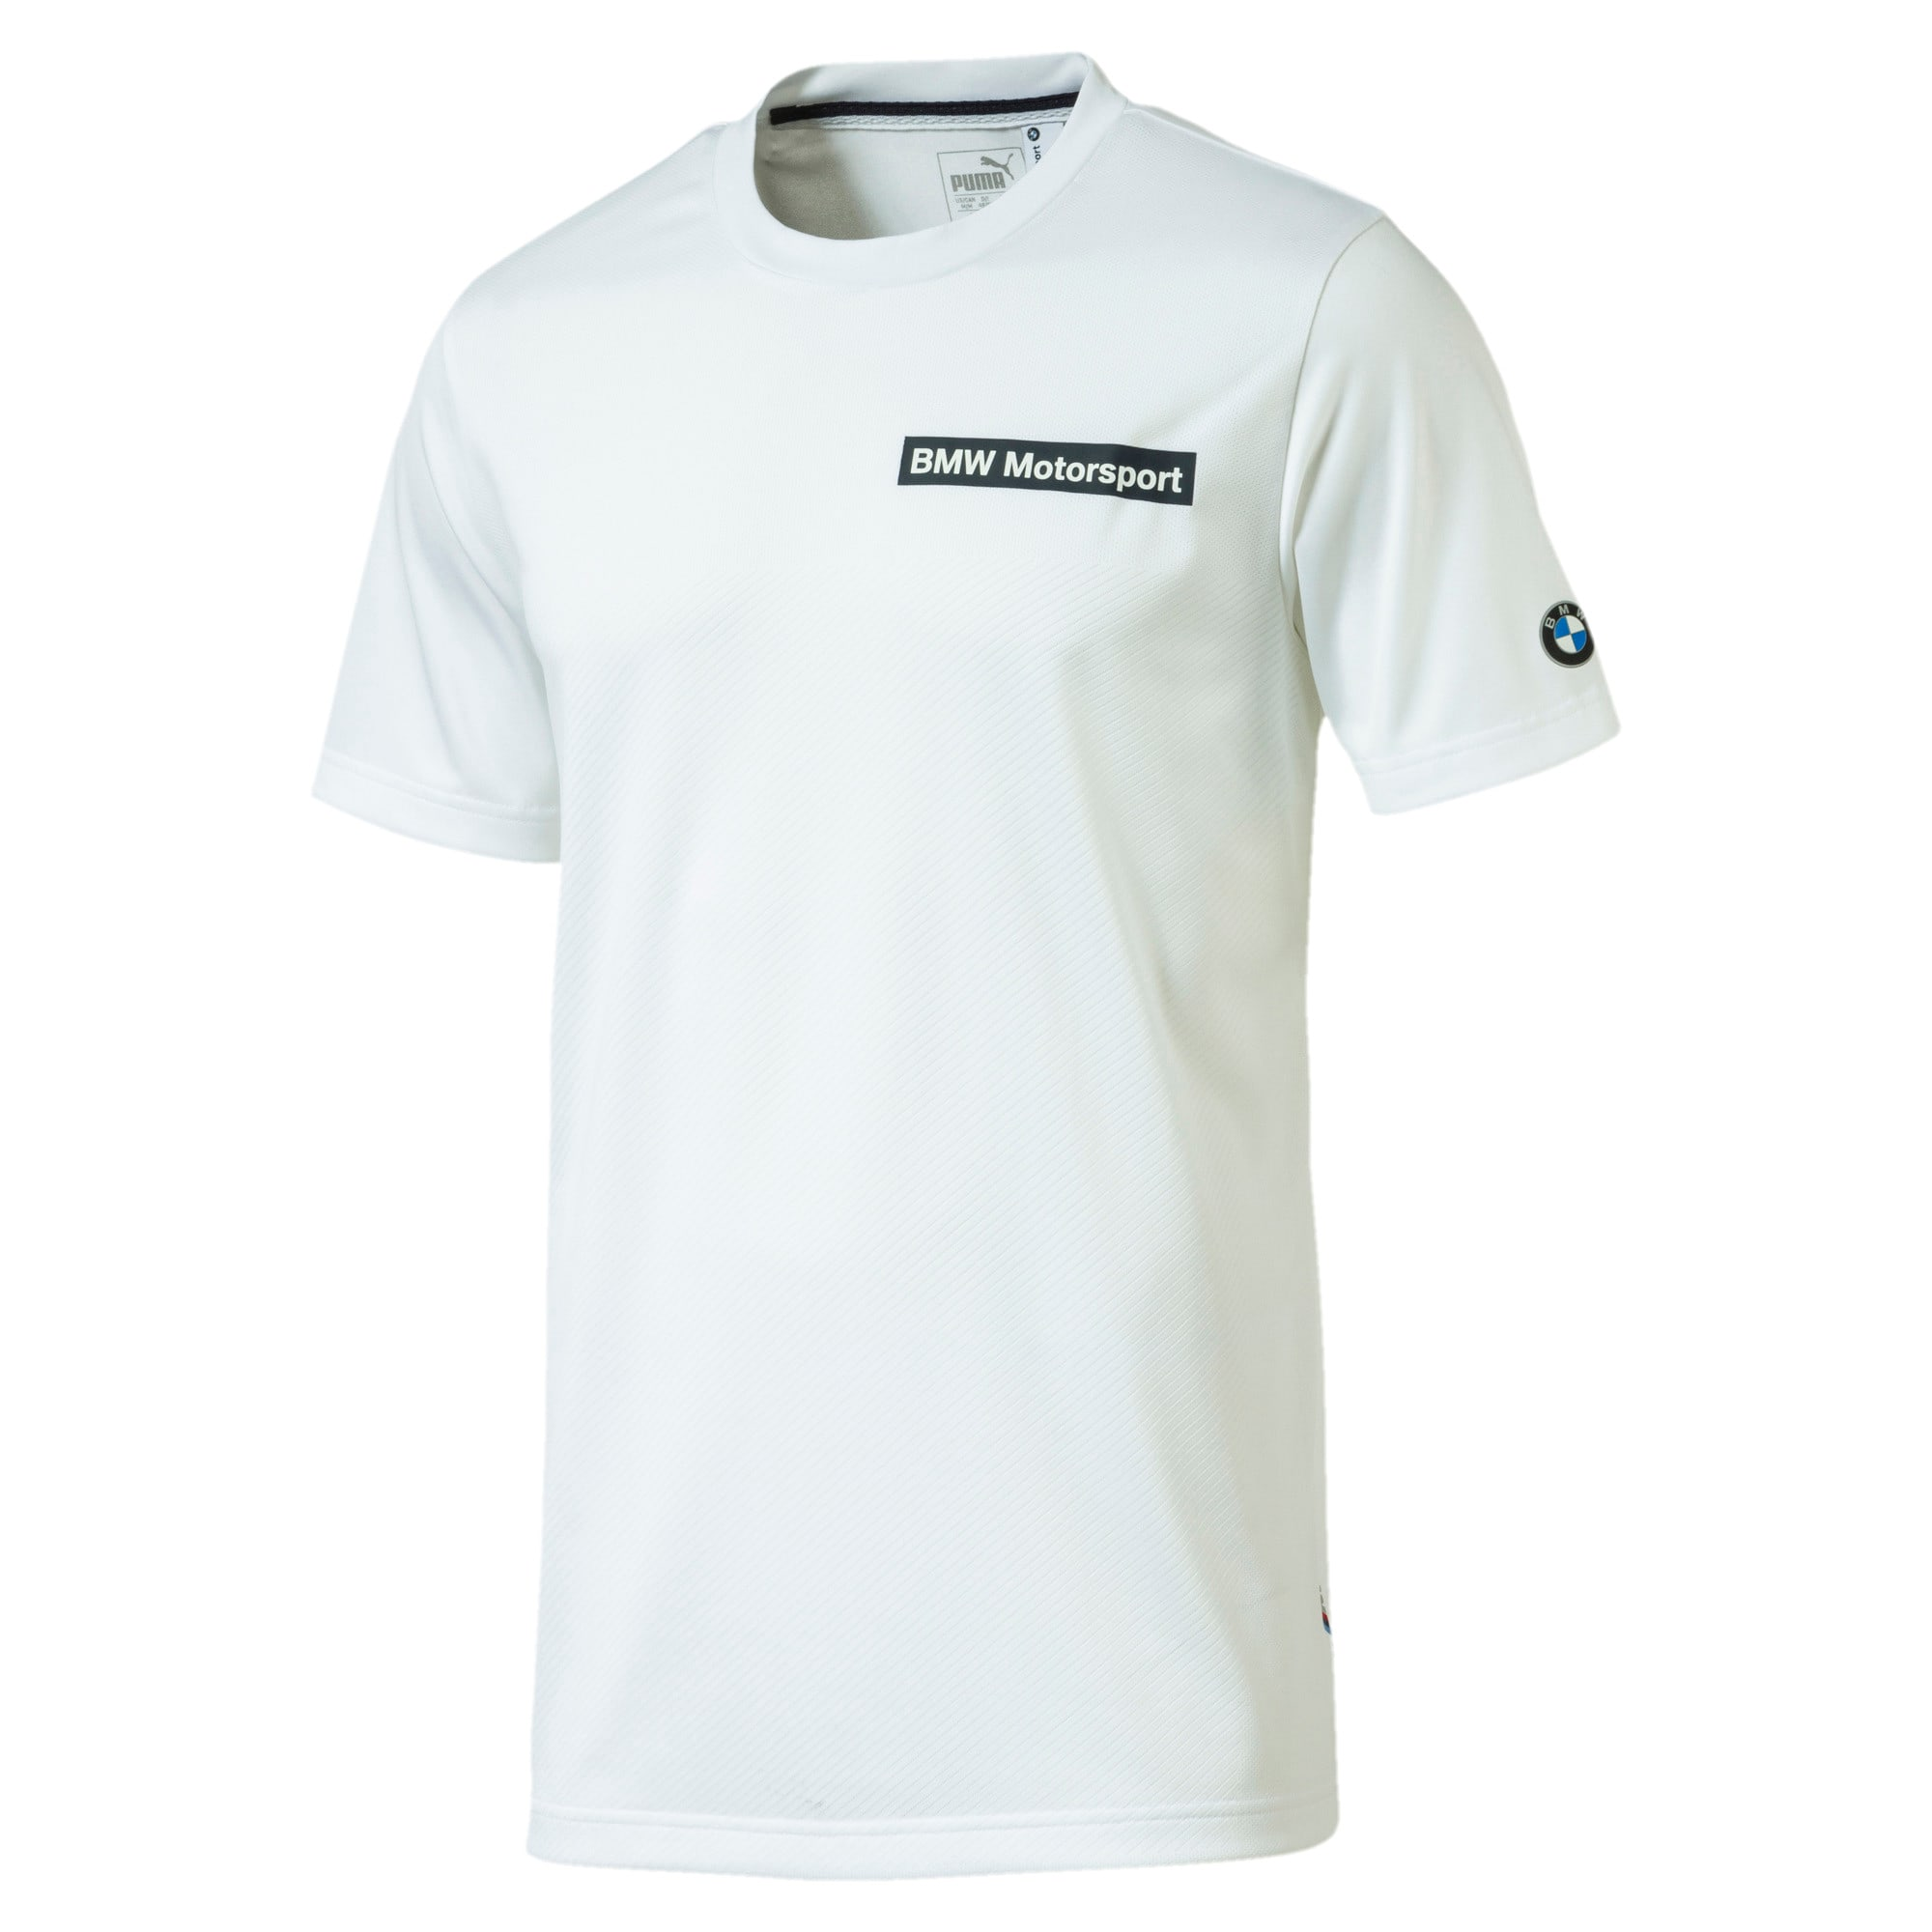 Thumbnail 1 of BMW Motorsport Speed Cat Evo Men's T-shirt, Puma White, medium-IND